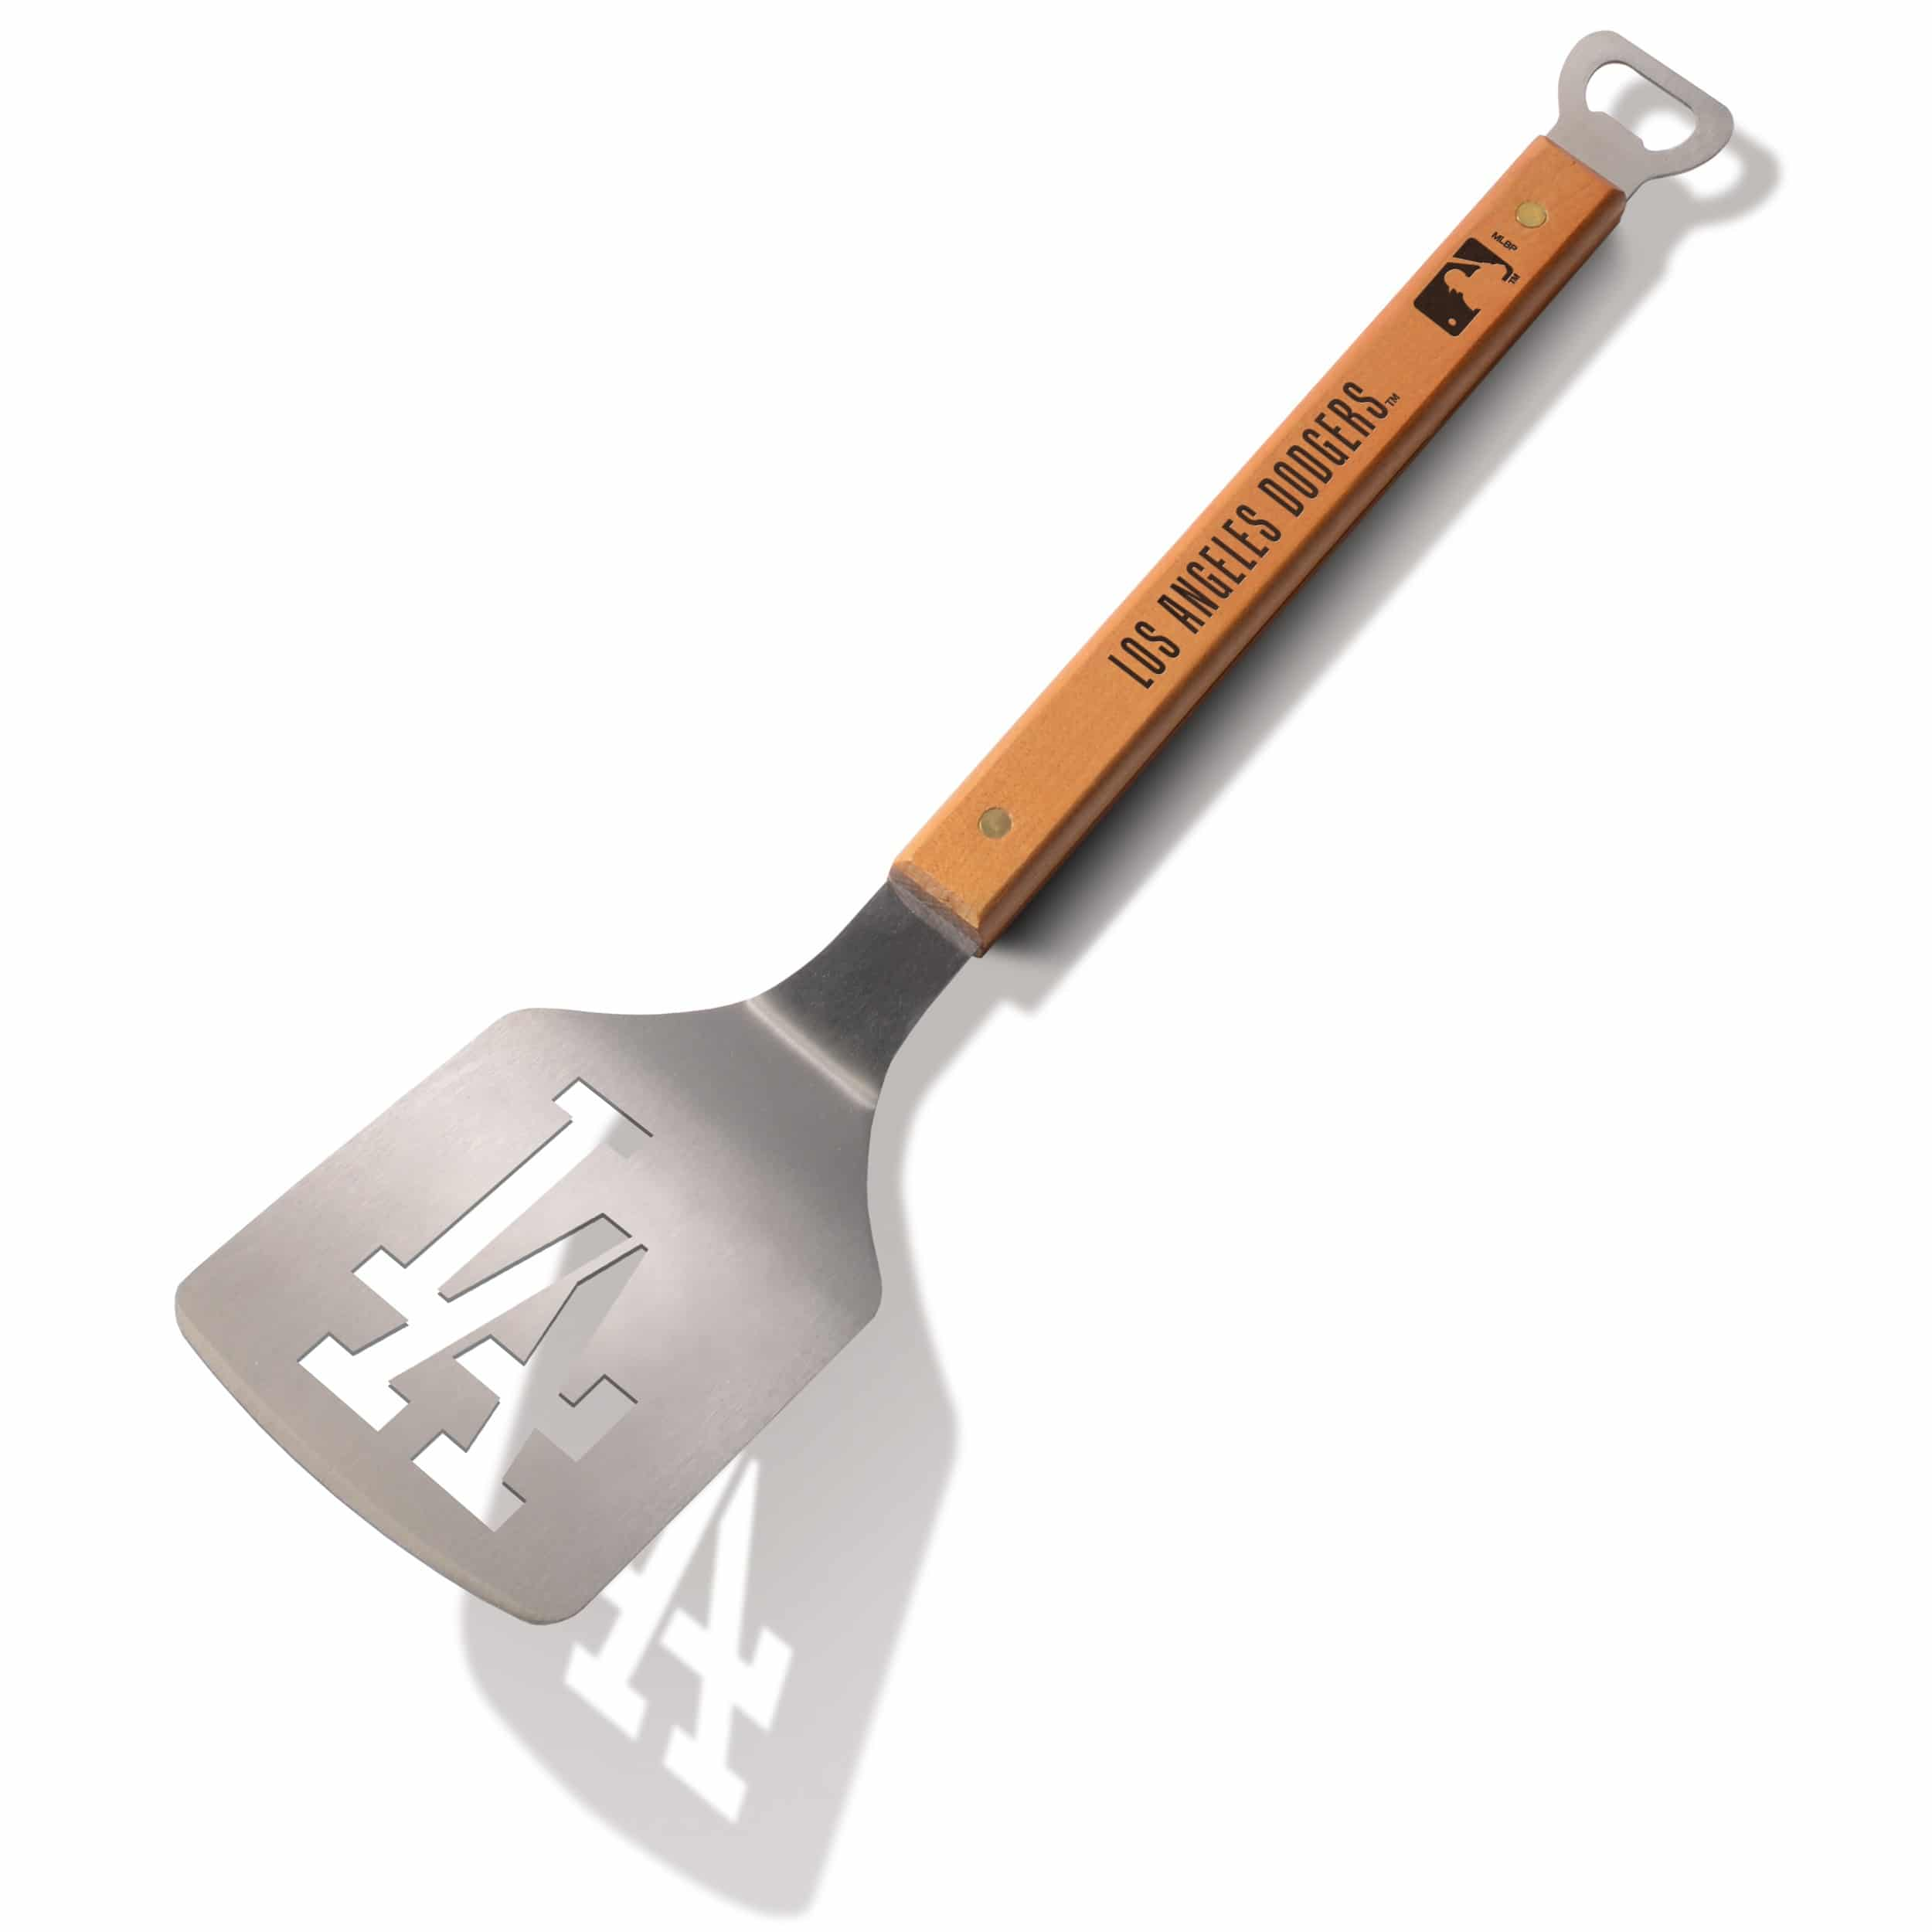 The Sportula Products, LA Grilling Spatula